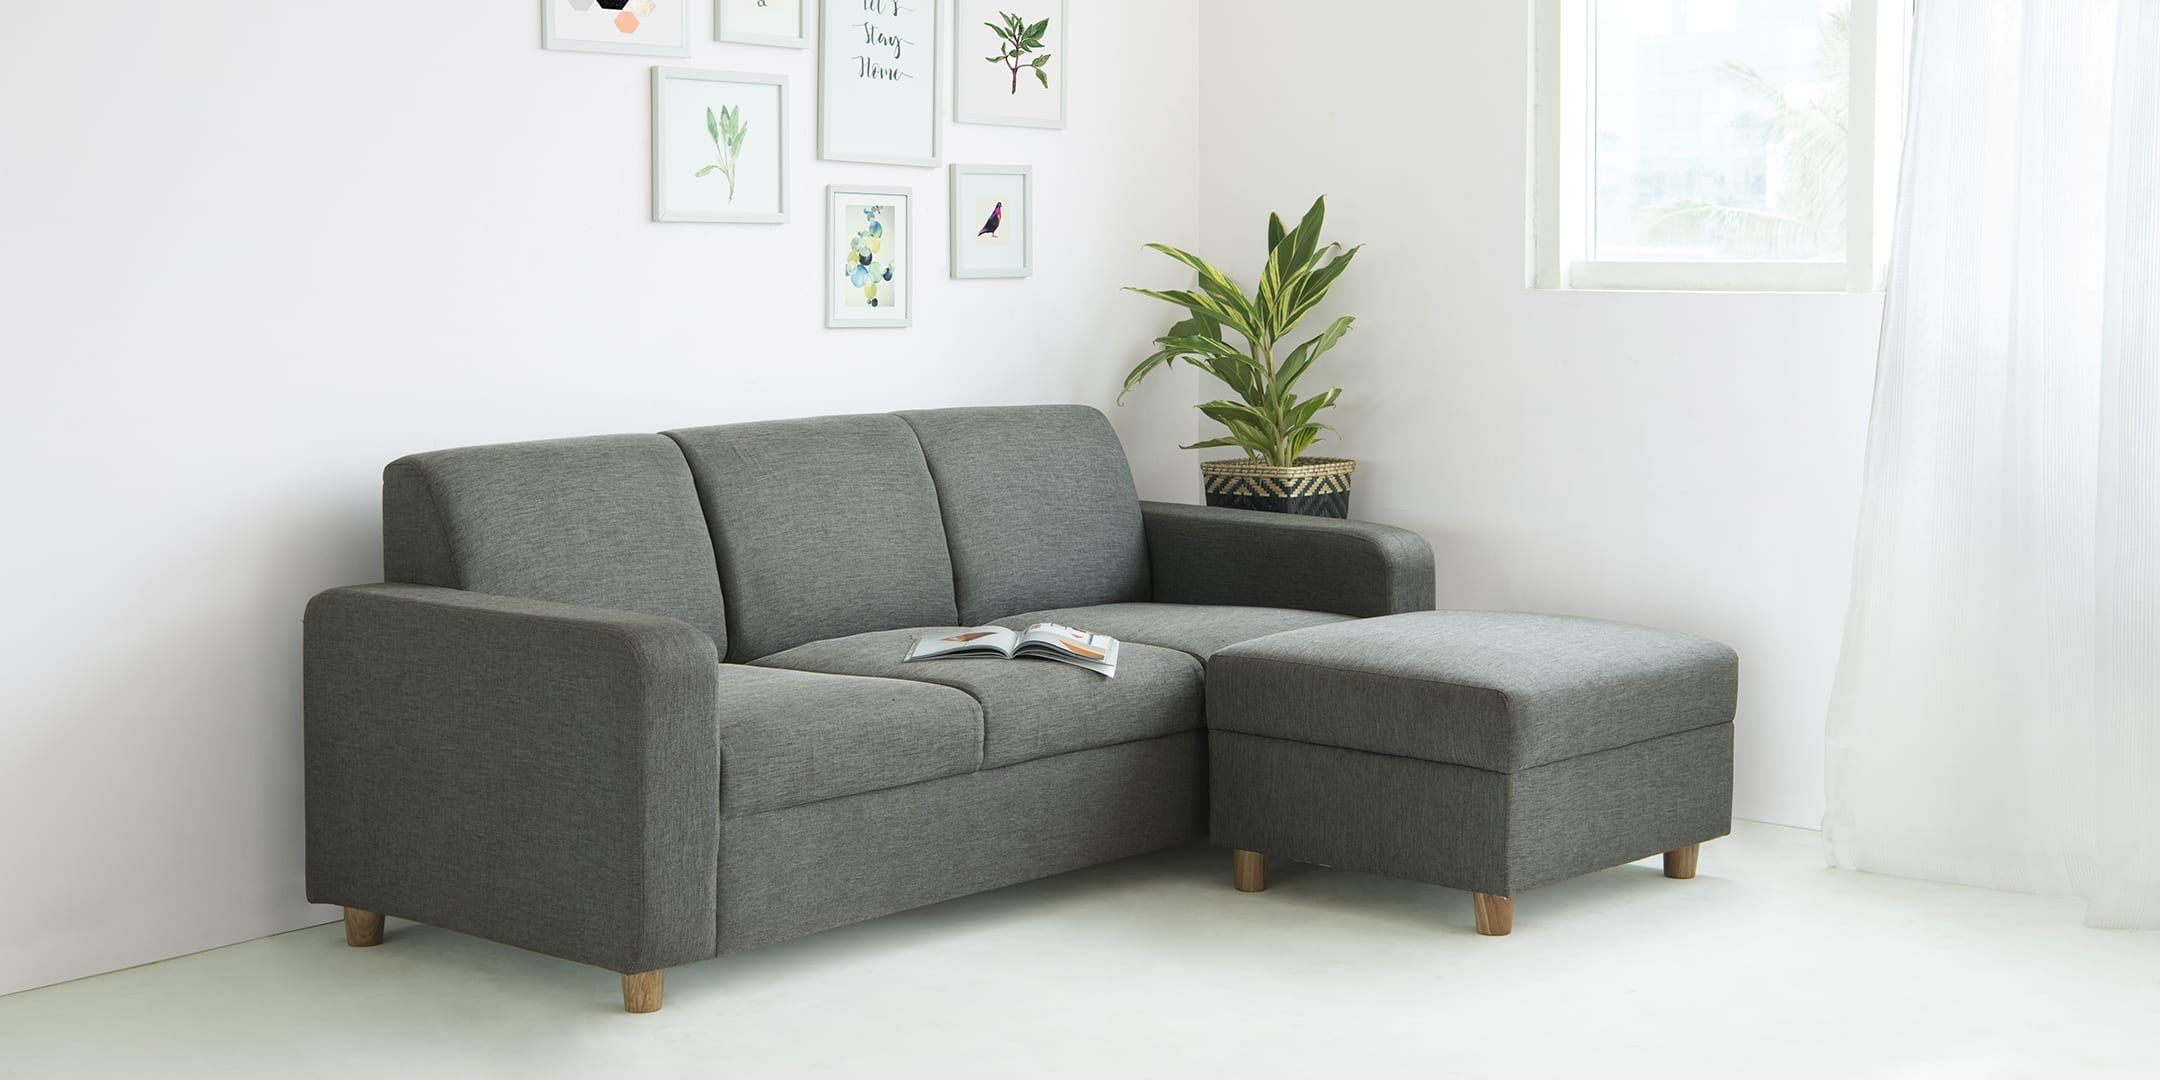 Flex L Shaped Living Room Furlenco Will Fit In The Door Side Or As You Enter I Like The Ottoman An In 2020 Furniture L Shaped Living Room Living Room Furniture